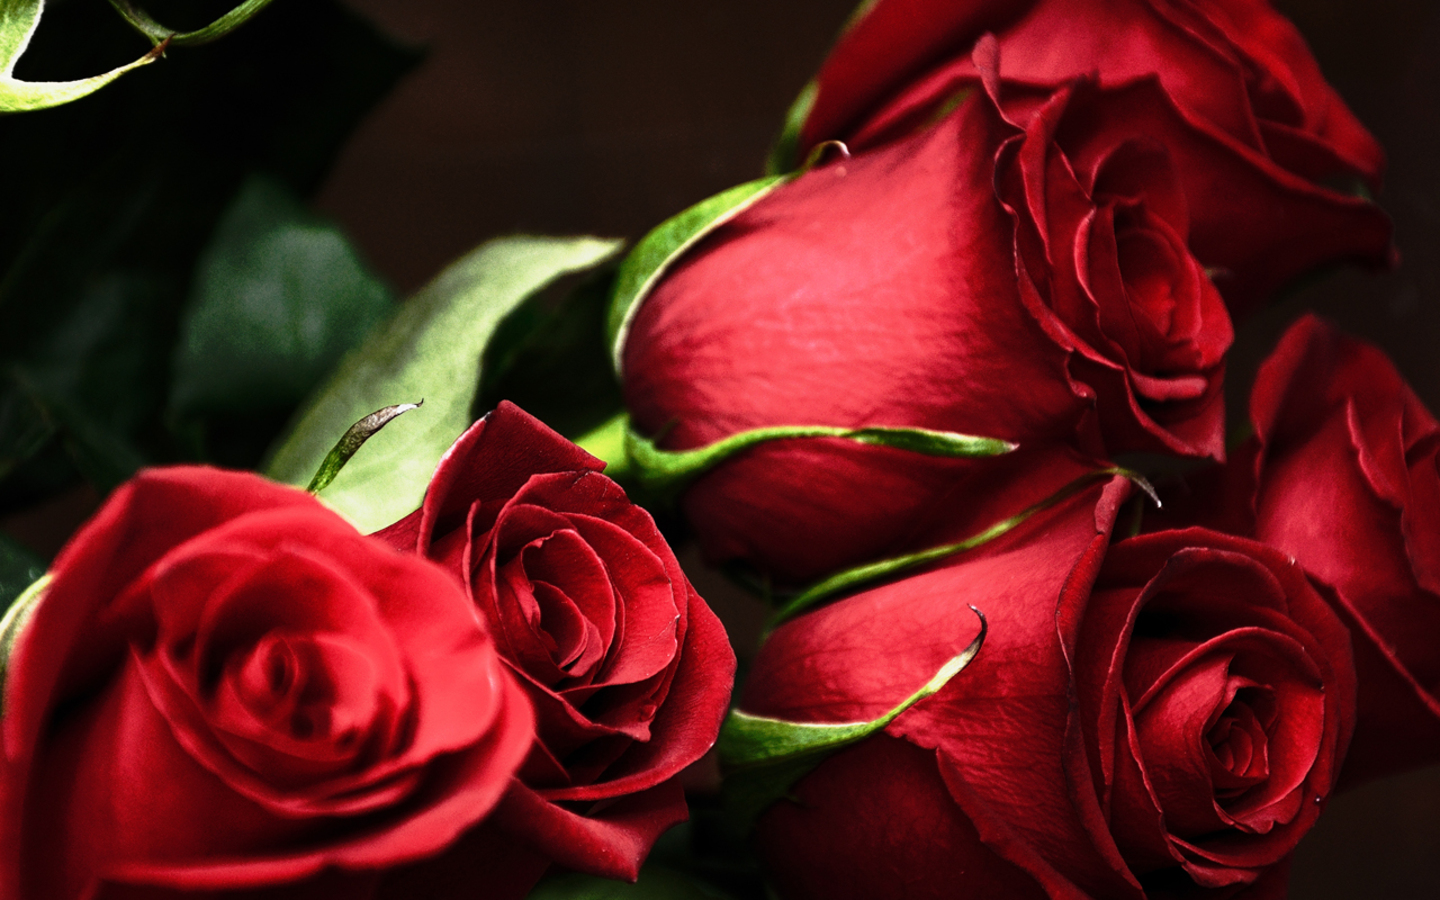 popular rose rose wallpapers beautiful rose red rose pictures rose 1440x900